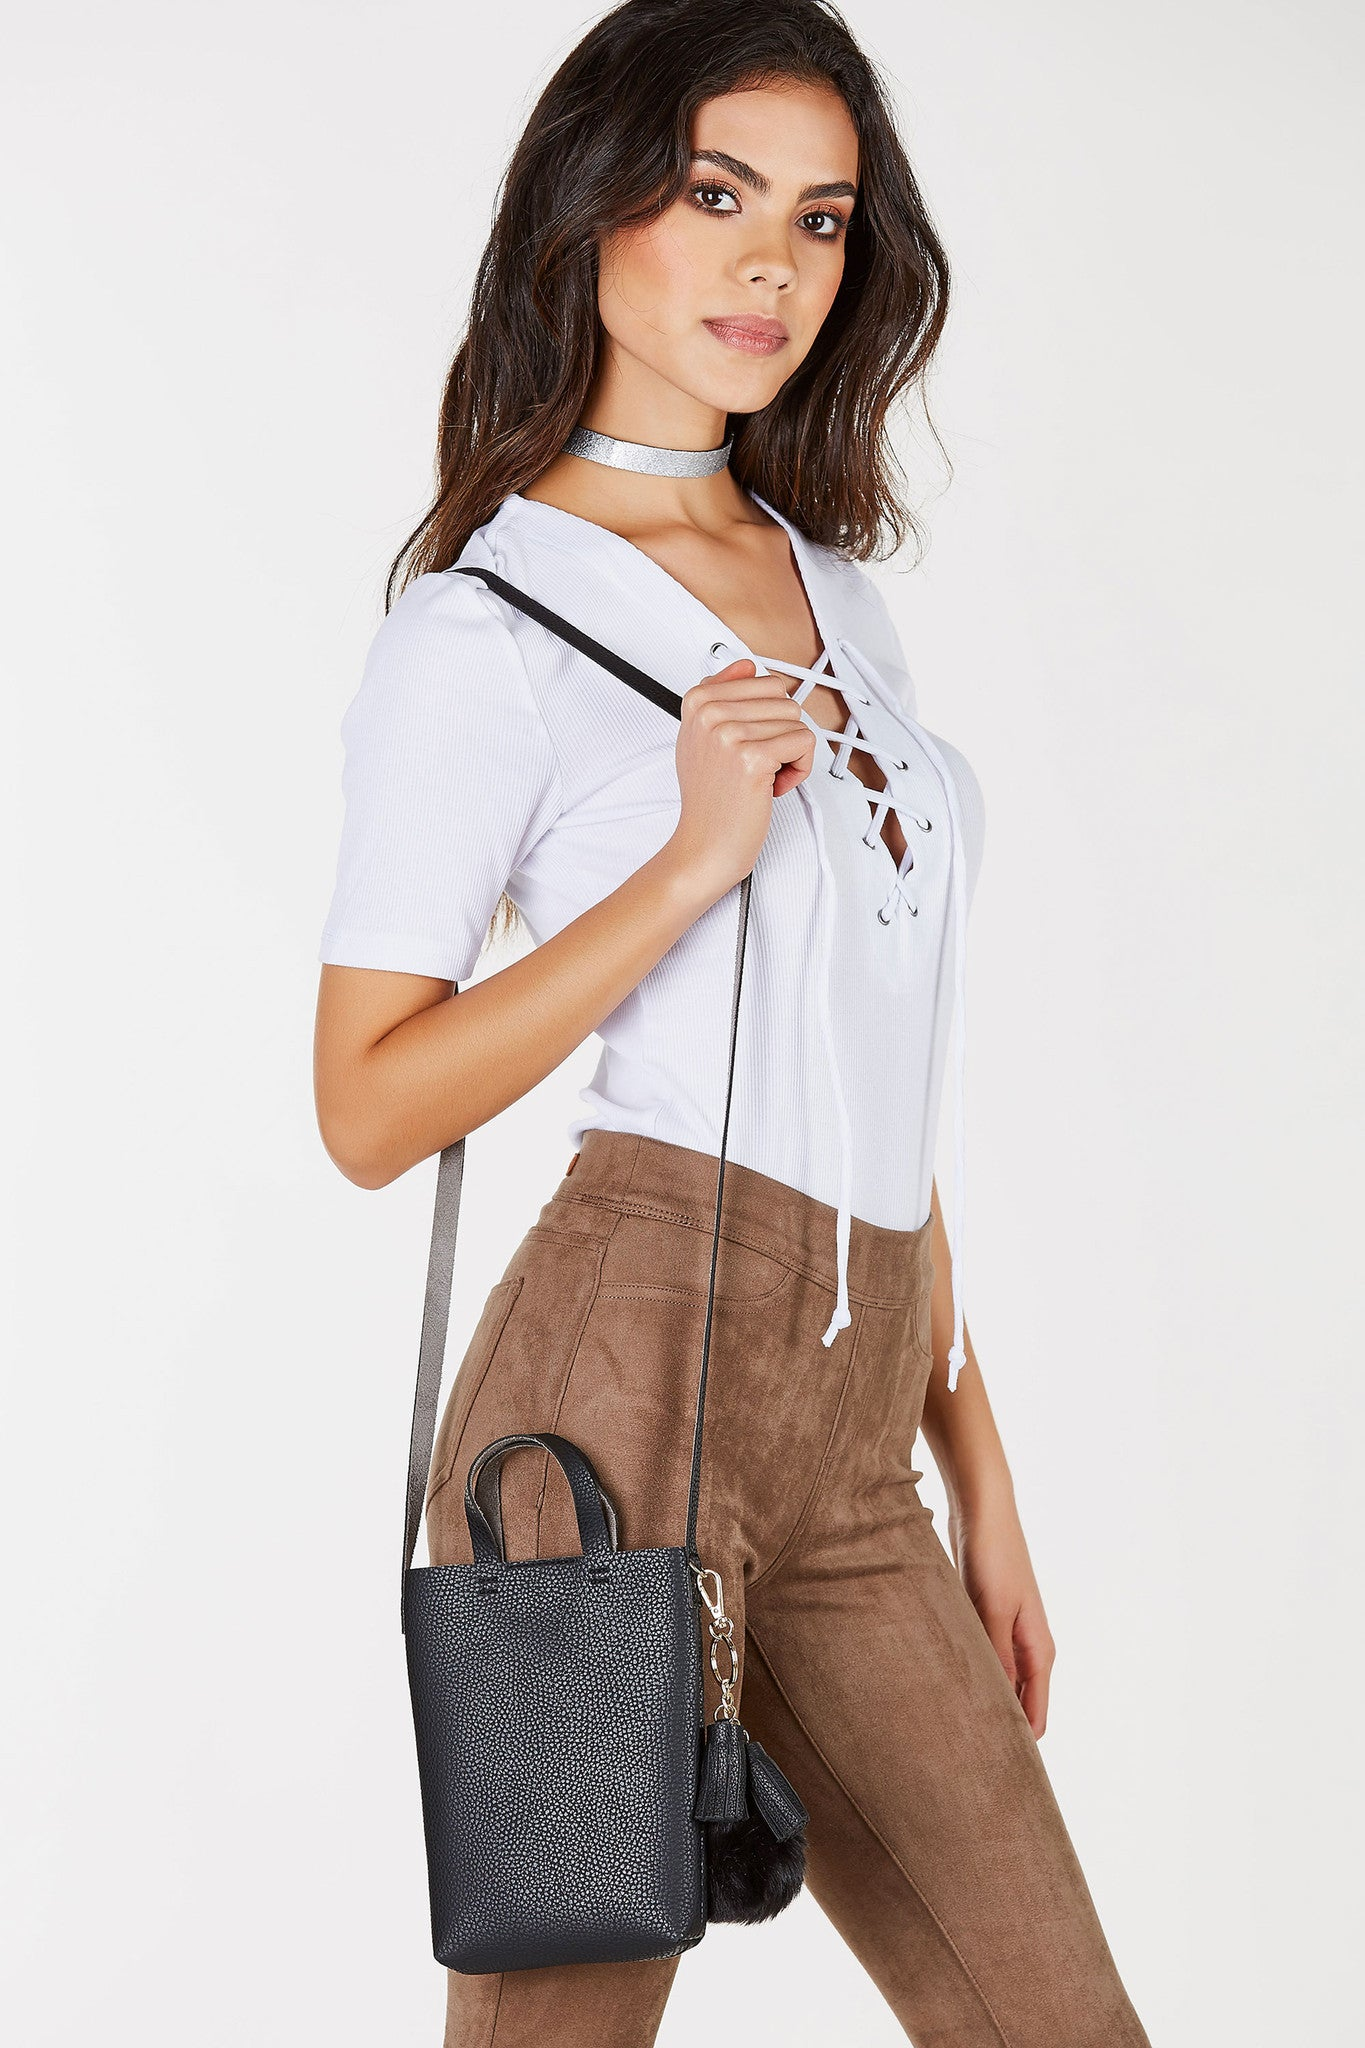 An adorable mini crossbody purse with faux fur pom pom and tassels attached for a flirty detail. Chic faux leather exterior for a classy vibe. Dainty handles at top with clean shoulder strap and magnetic closure. The perfect addition to your basic day to day outfits for functionality and style!